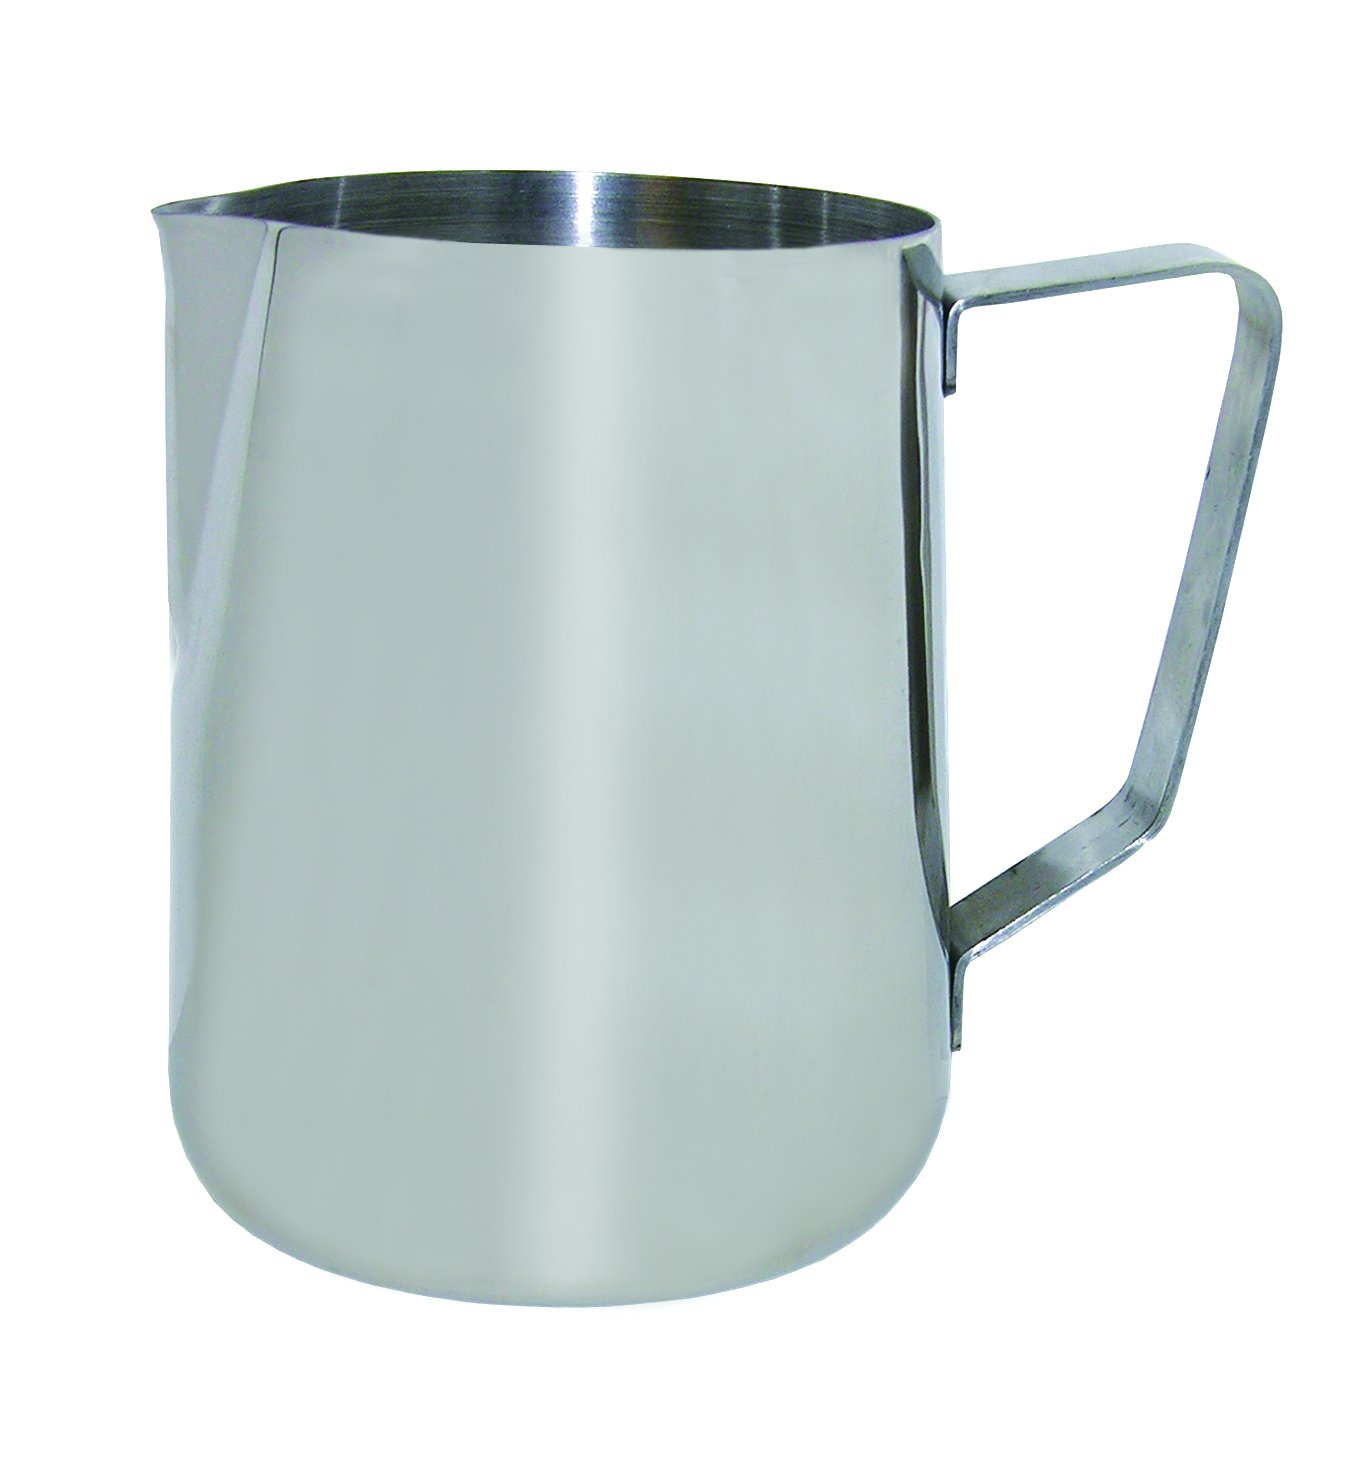 Update International EP-66 Espresso Milk Pitcher 66oz